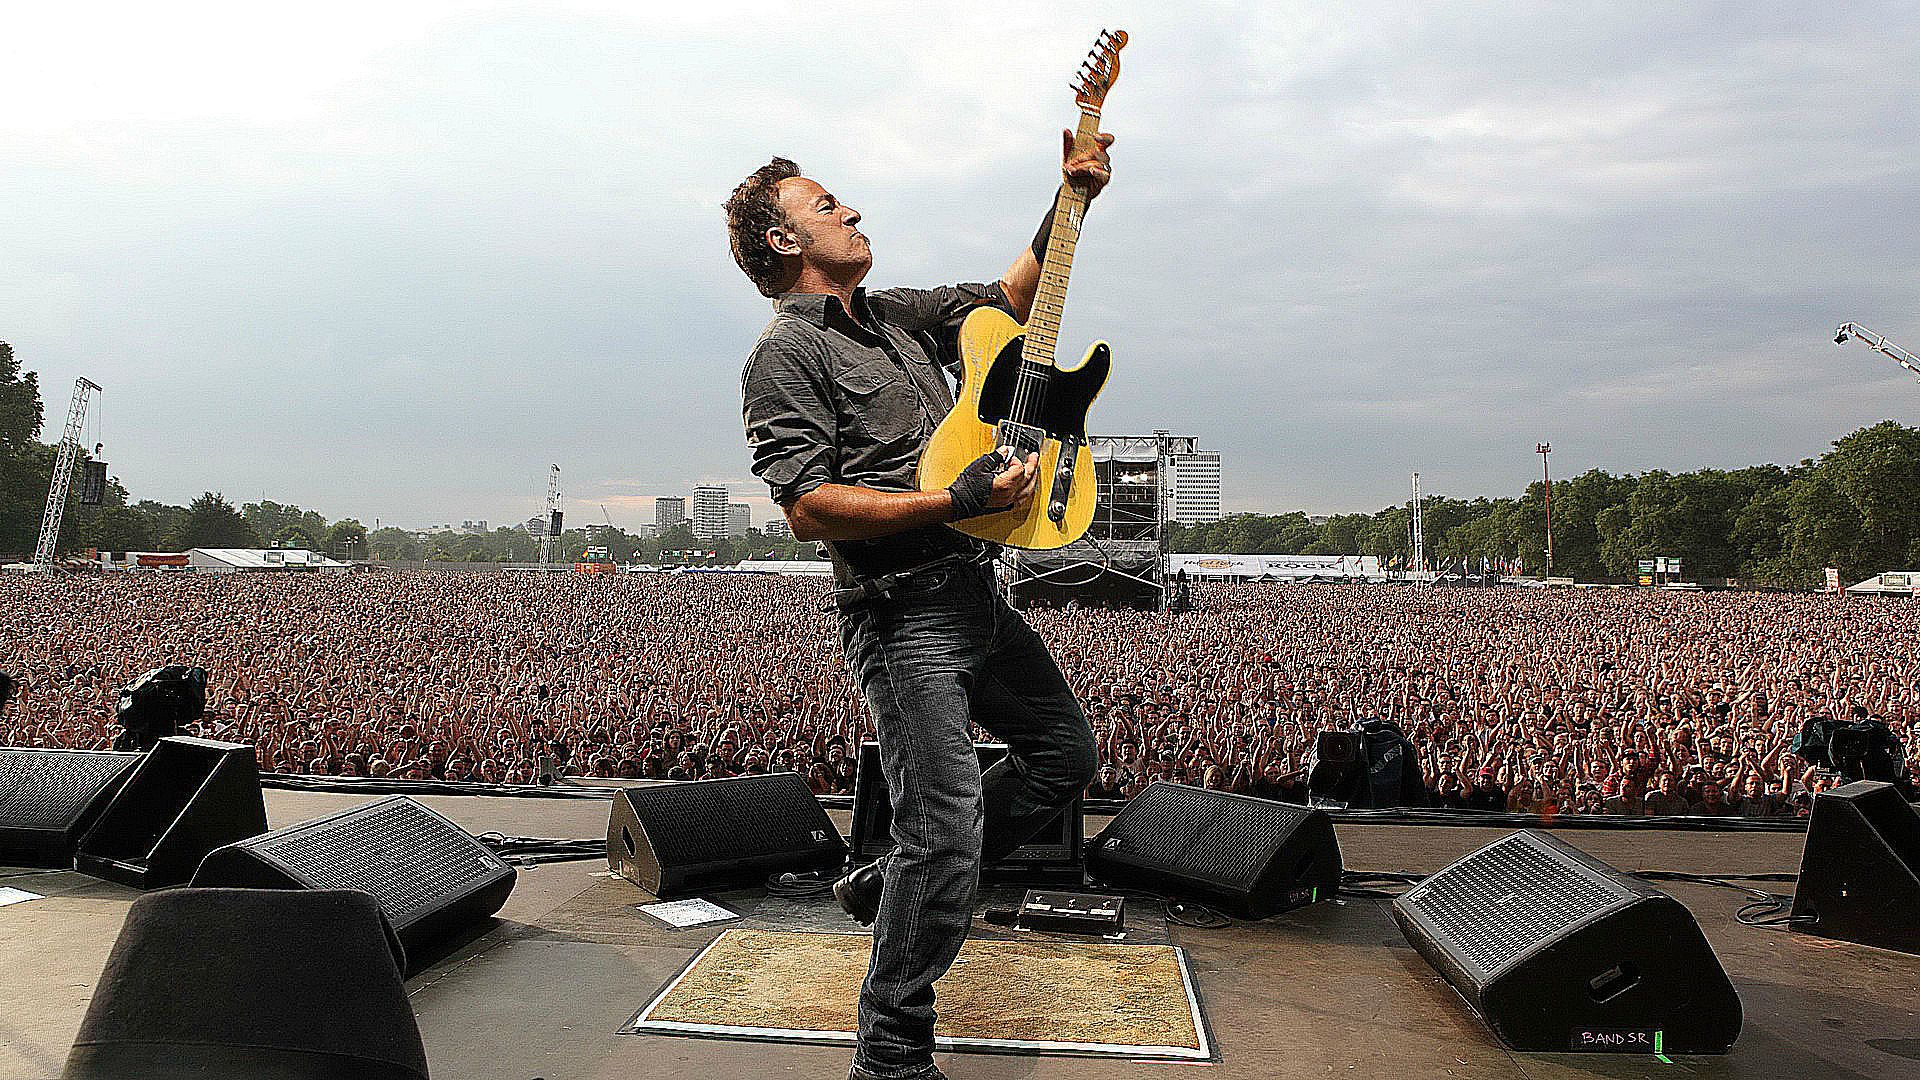 [Image: bruce_sporingsteen_live_wallpaper_london_2012.jpg]